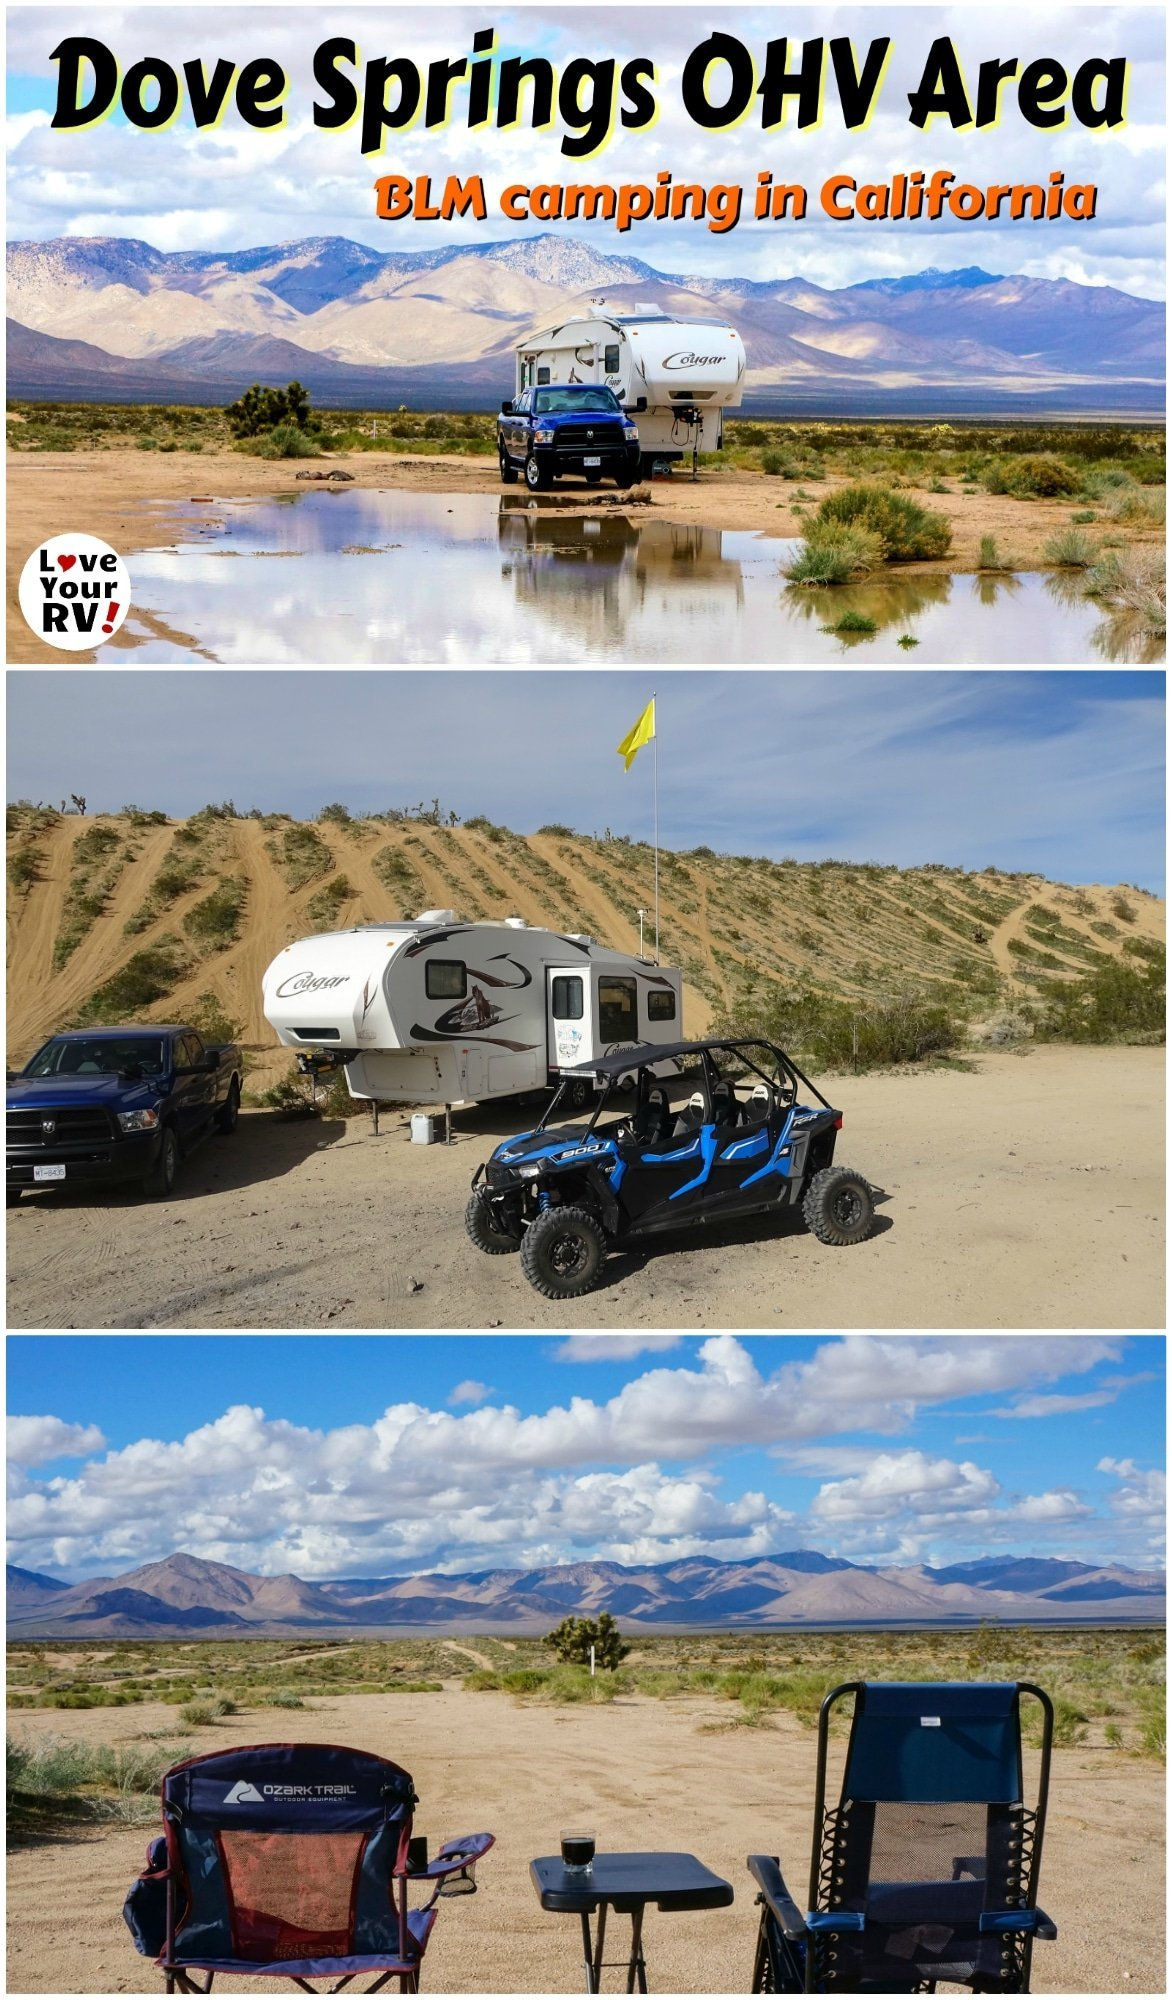 Free BLM camping in California at the Dove Springs OHV area